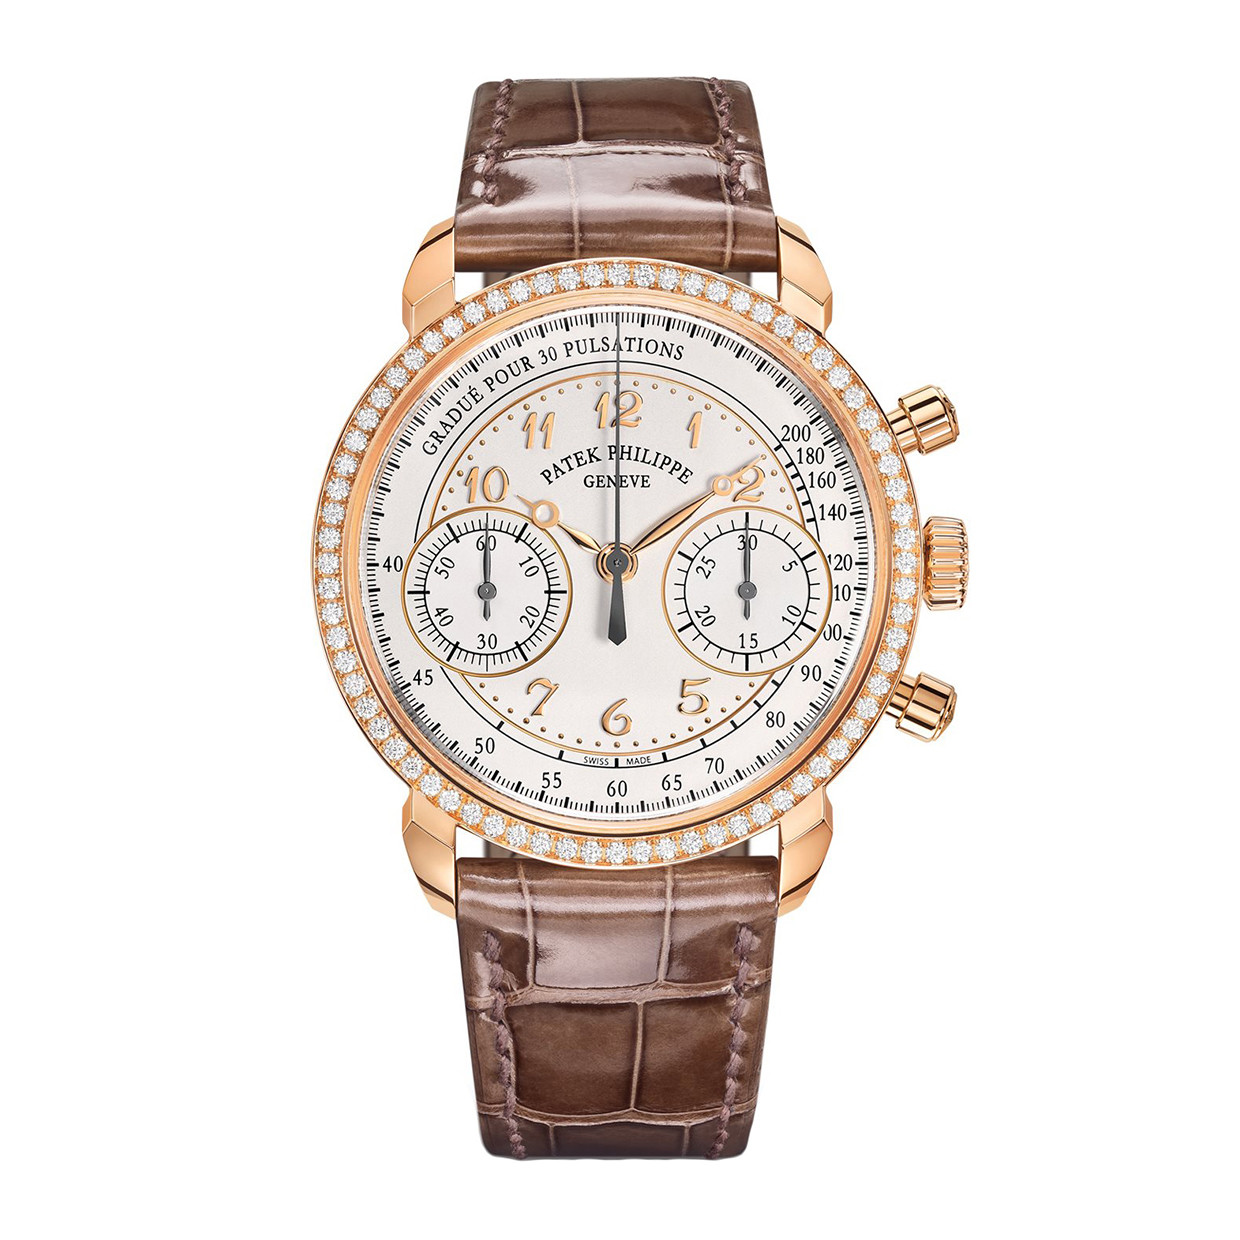 Ladies' Chronograph Rose Gold (7150/250R-001)